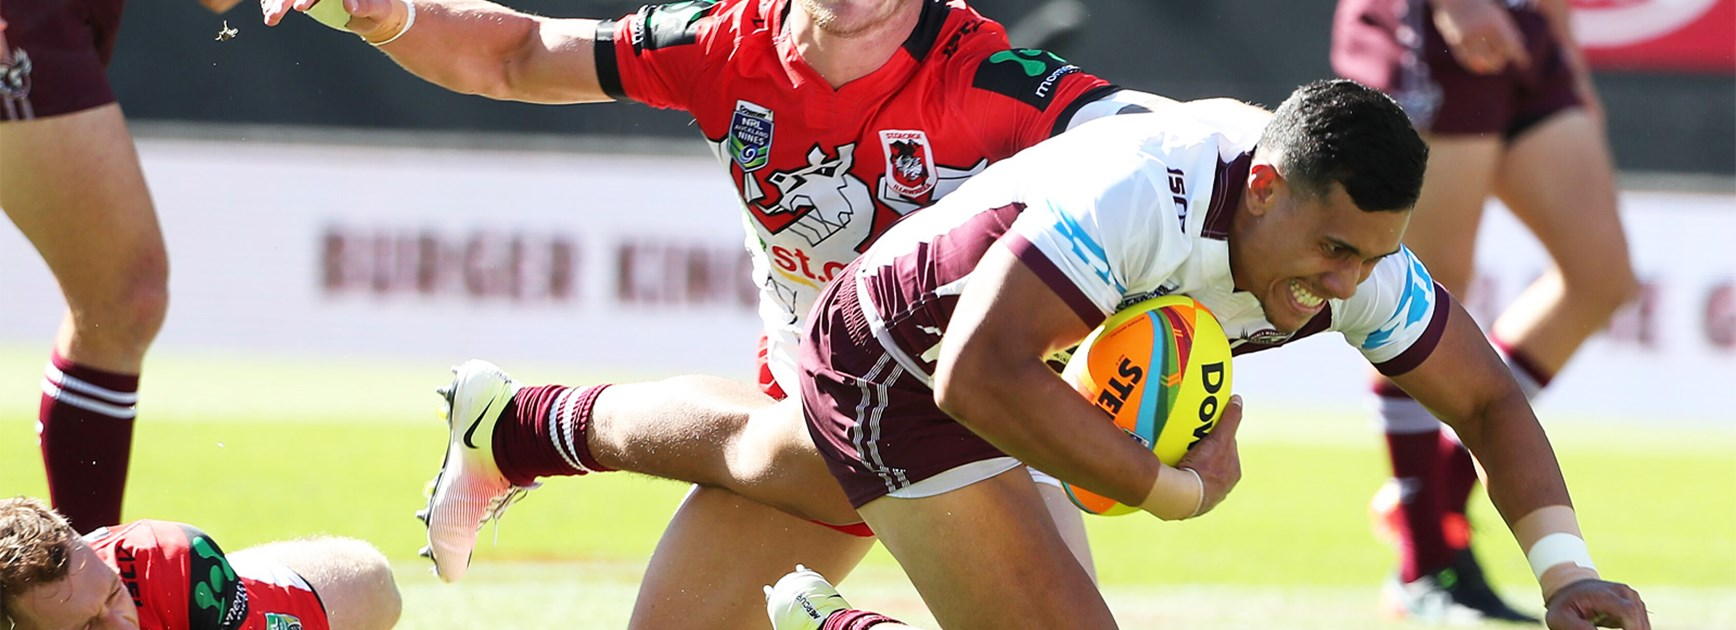 The Sea Eagles edged the Dragons 23-20 in their second match at the Auckland Nines.